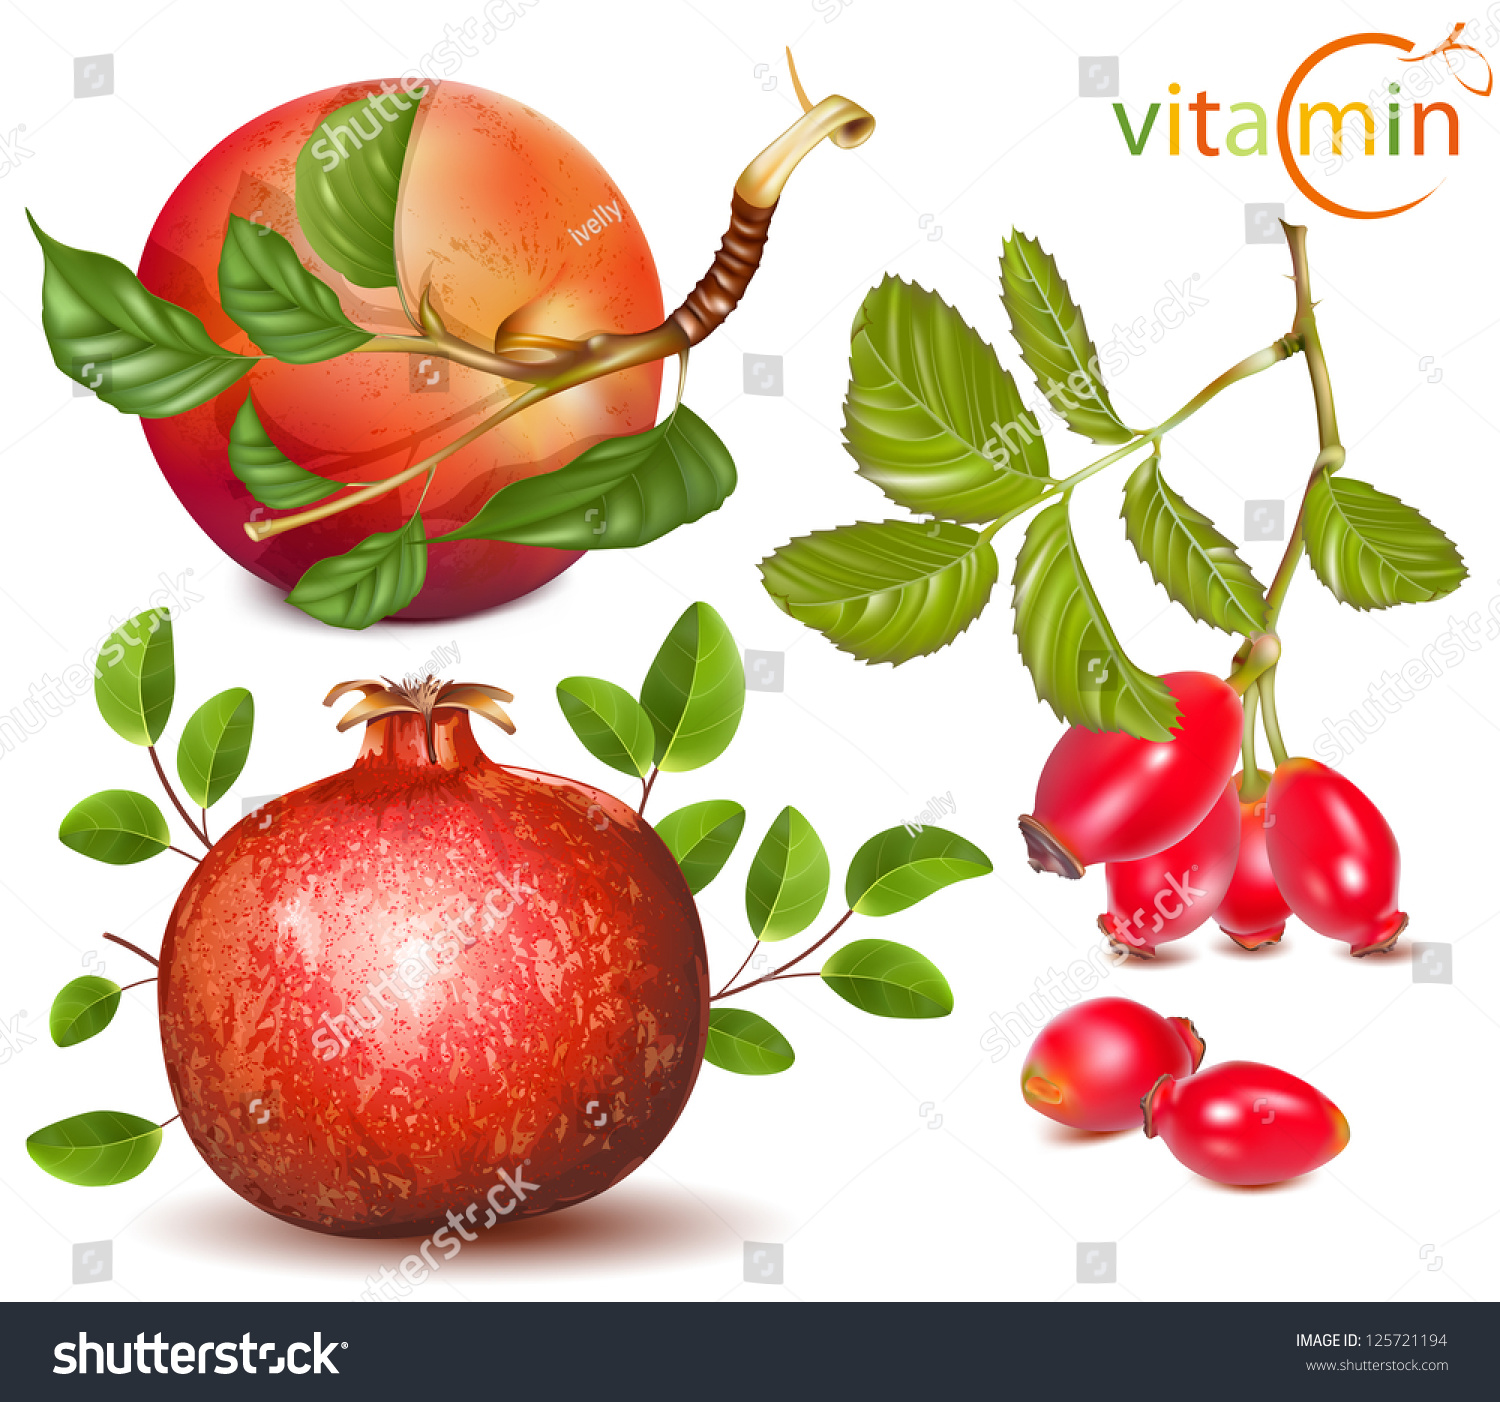 Vector Vitamin C Included Fruits Apples Stock Vector 125721194 ...